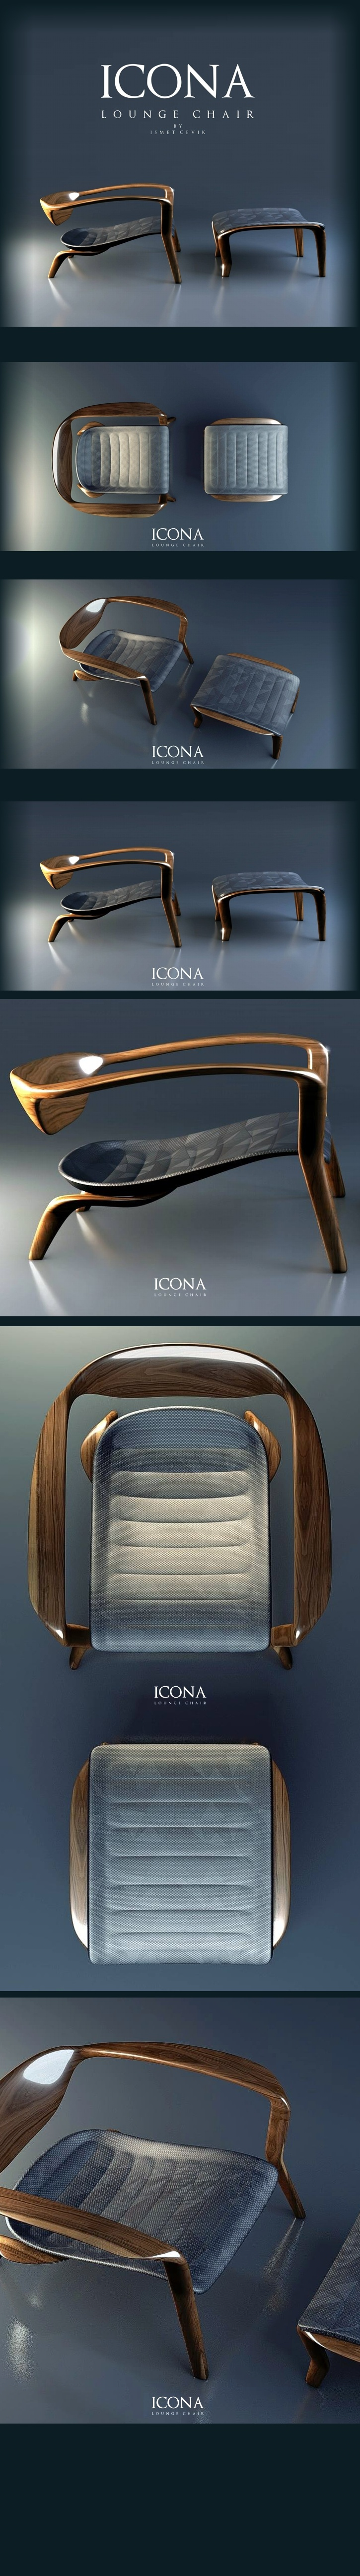 chaise-chair-design-icona-lounge